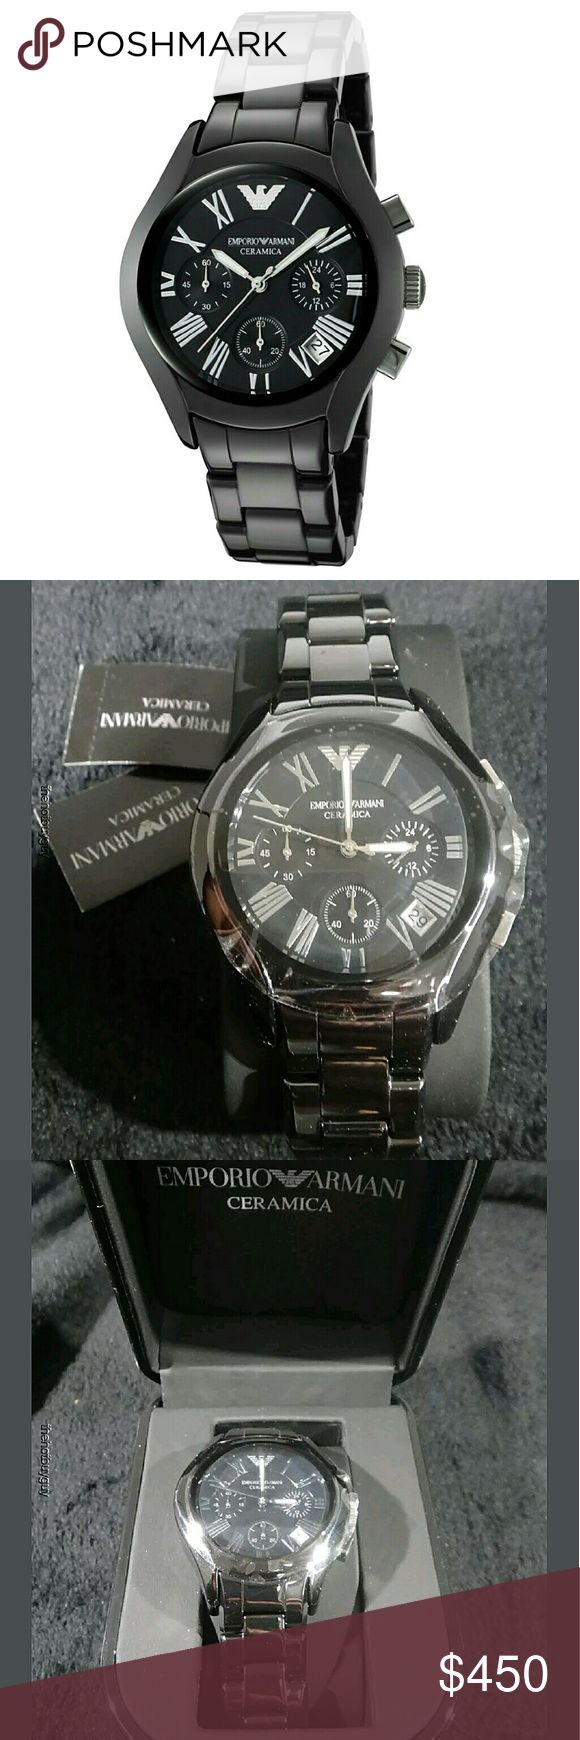 NWT Emporio Armani Ceramic Chronograph watch EMPORIO ARMANI  Emporio Black Ceramic Chronograph Ladies Watch.   FIRM PRICE FIRM PRICE FIRM PRICE  $450.00 . AUTHENTIC WATCH  . AUTHENTIC BOX  . AUTHENTIC MANUAL    SHIPPING  PLEASE ALLOW FEW BUSINESS DAYS FOR ME TO SHIPPED IT OFF.I HAVE TO GET IT FROM MY WAREHOUSE.    THANK YOU FOR YOUR UNDERSTANDING. emporio Armani  Accessories Watches